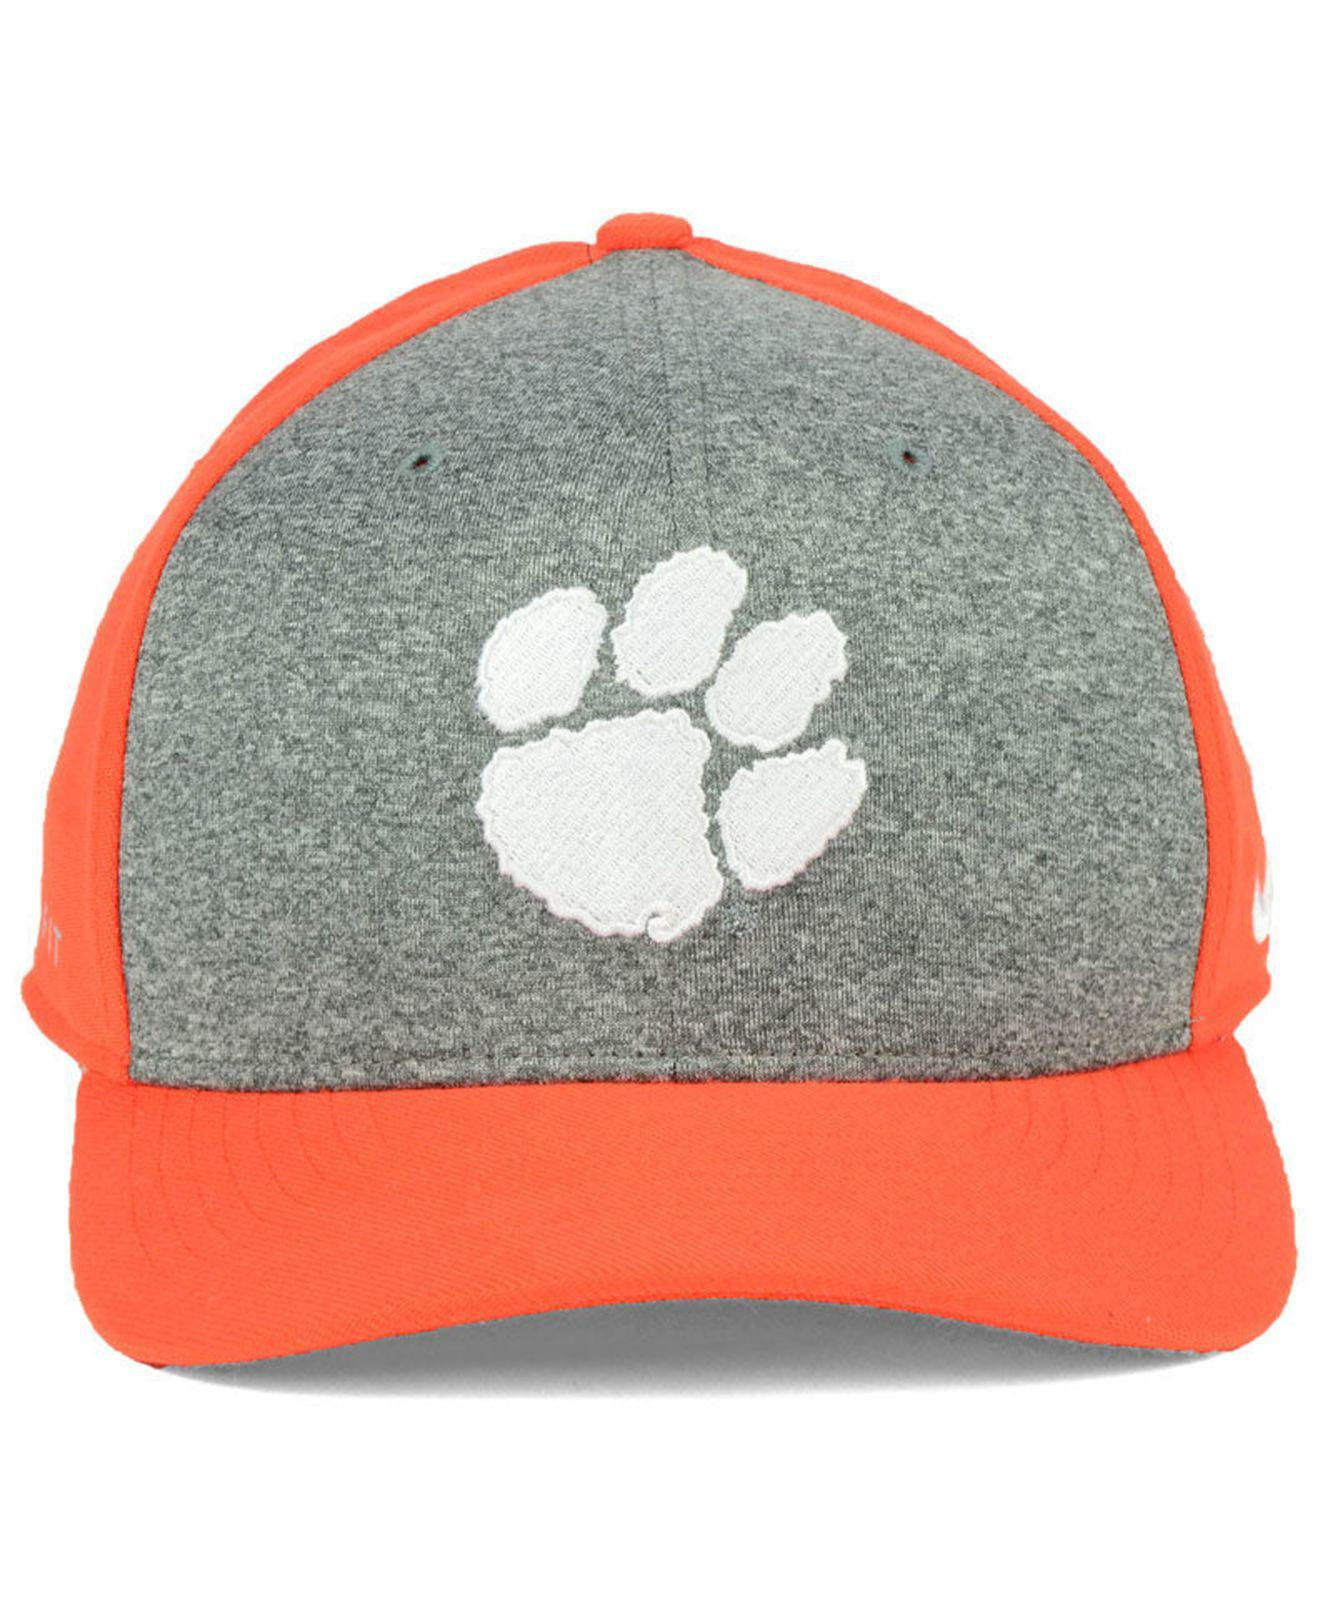 premium selection a9c77 e1306 ... just do it swooshflex cap 75245 67166  best price lyst nike clemson  tigers legend swooshflex cap for men 61575 3145e